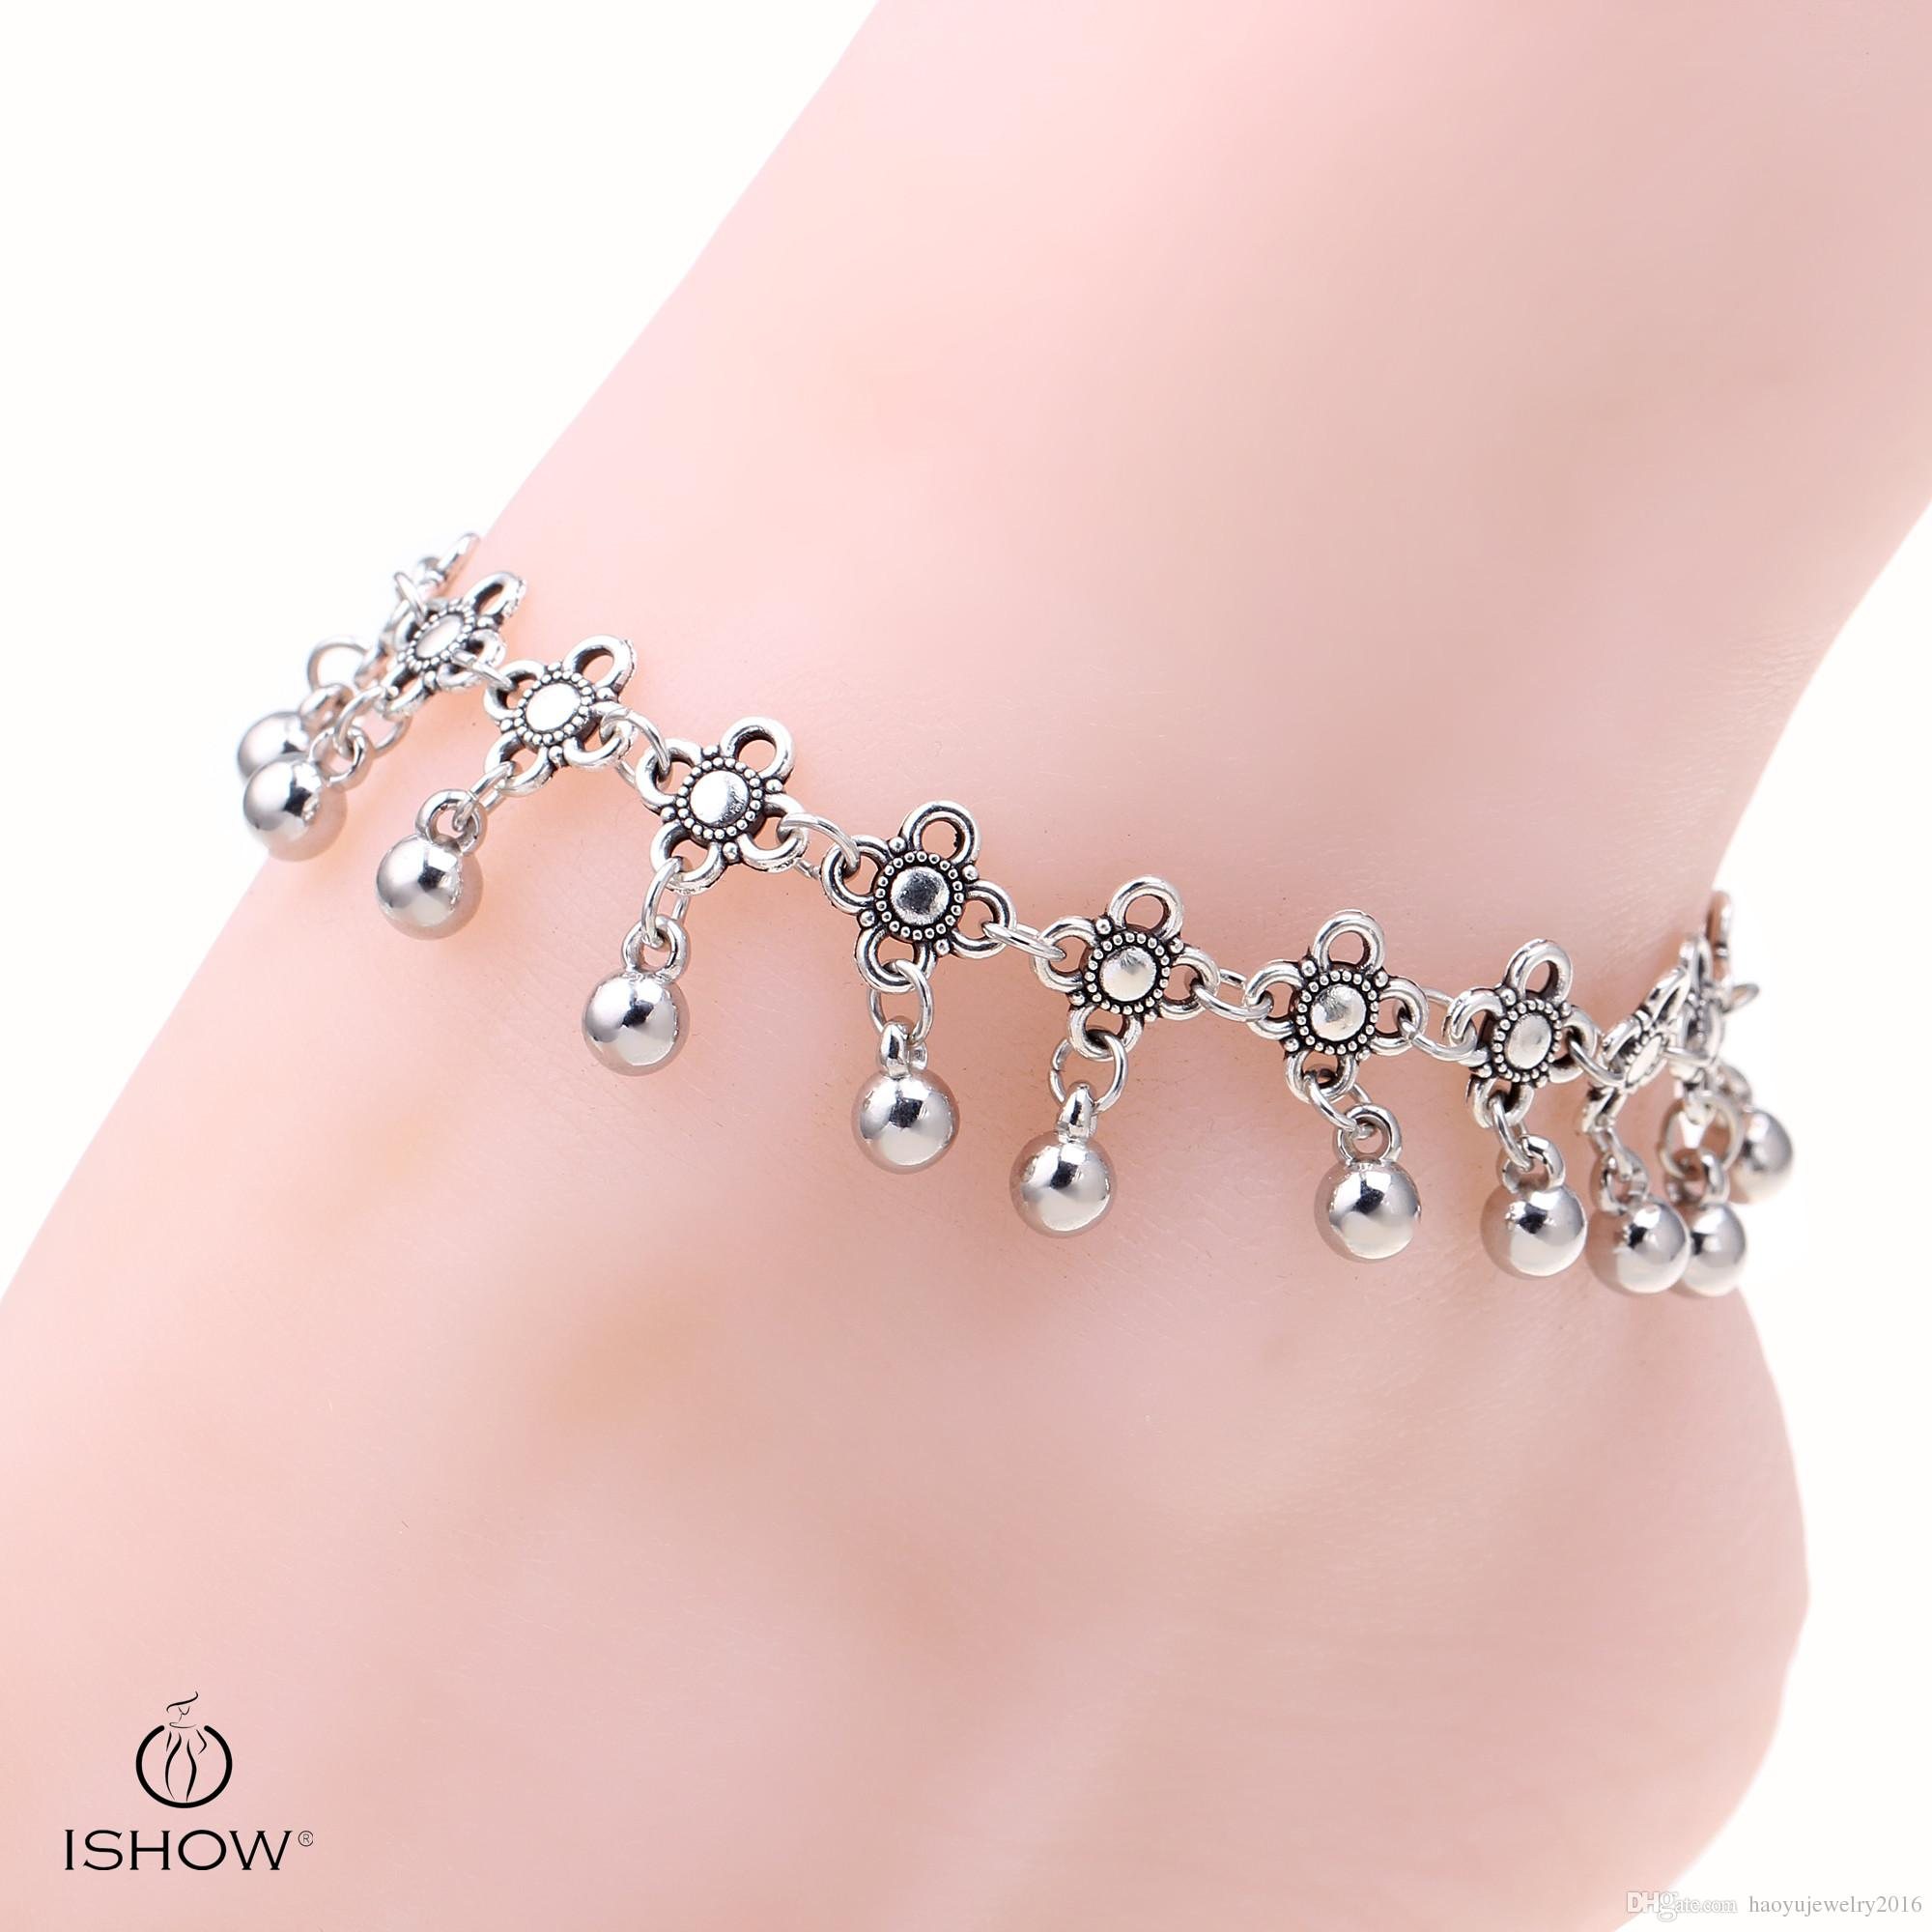 crown anklets store wear for pendants product feet fashion styles wearing foot silver pure anklet ladies zirconia trendy charms jewelry summer queen brand nice